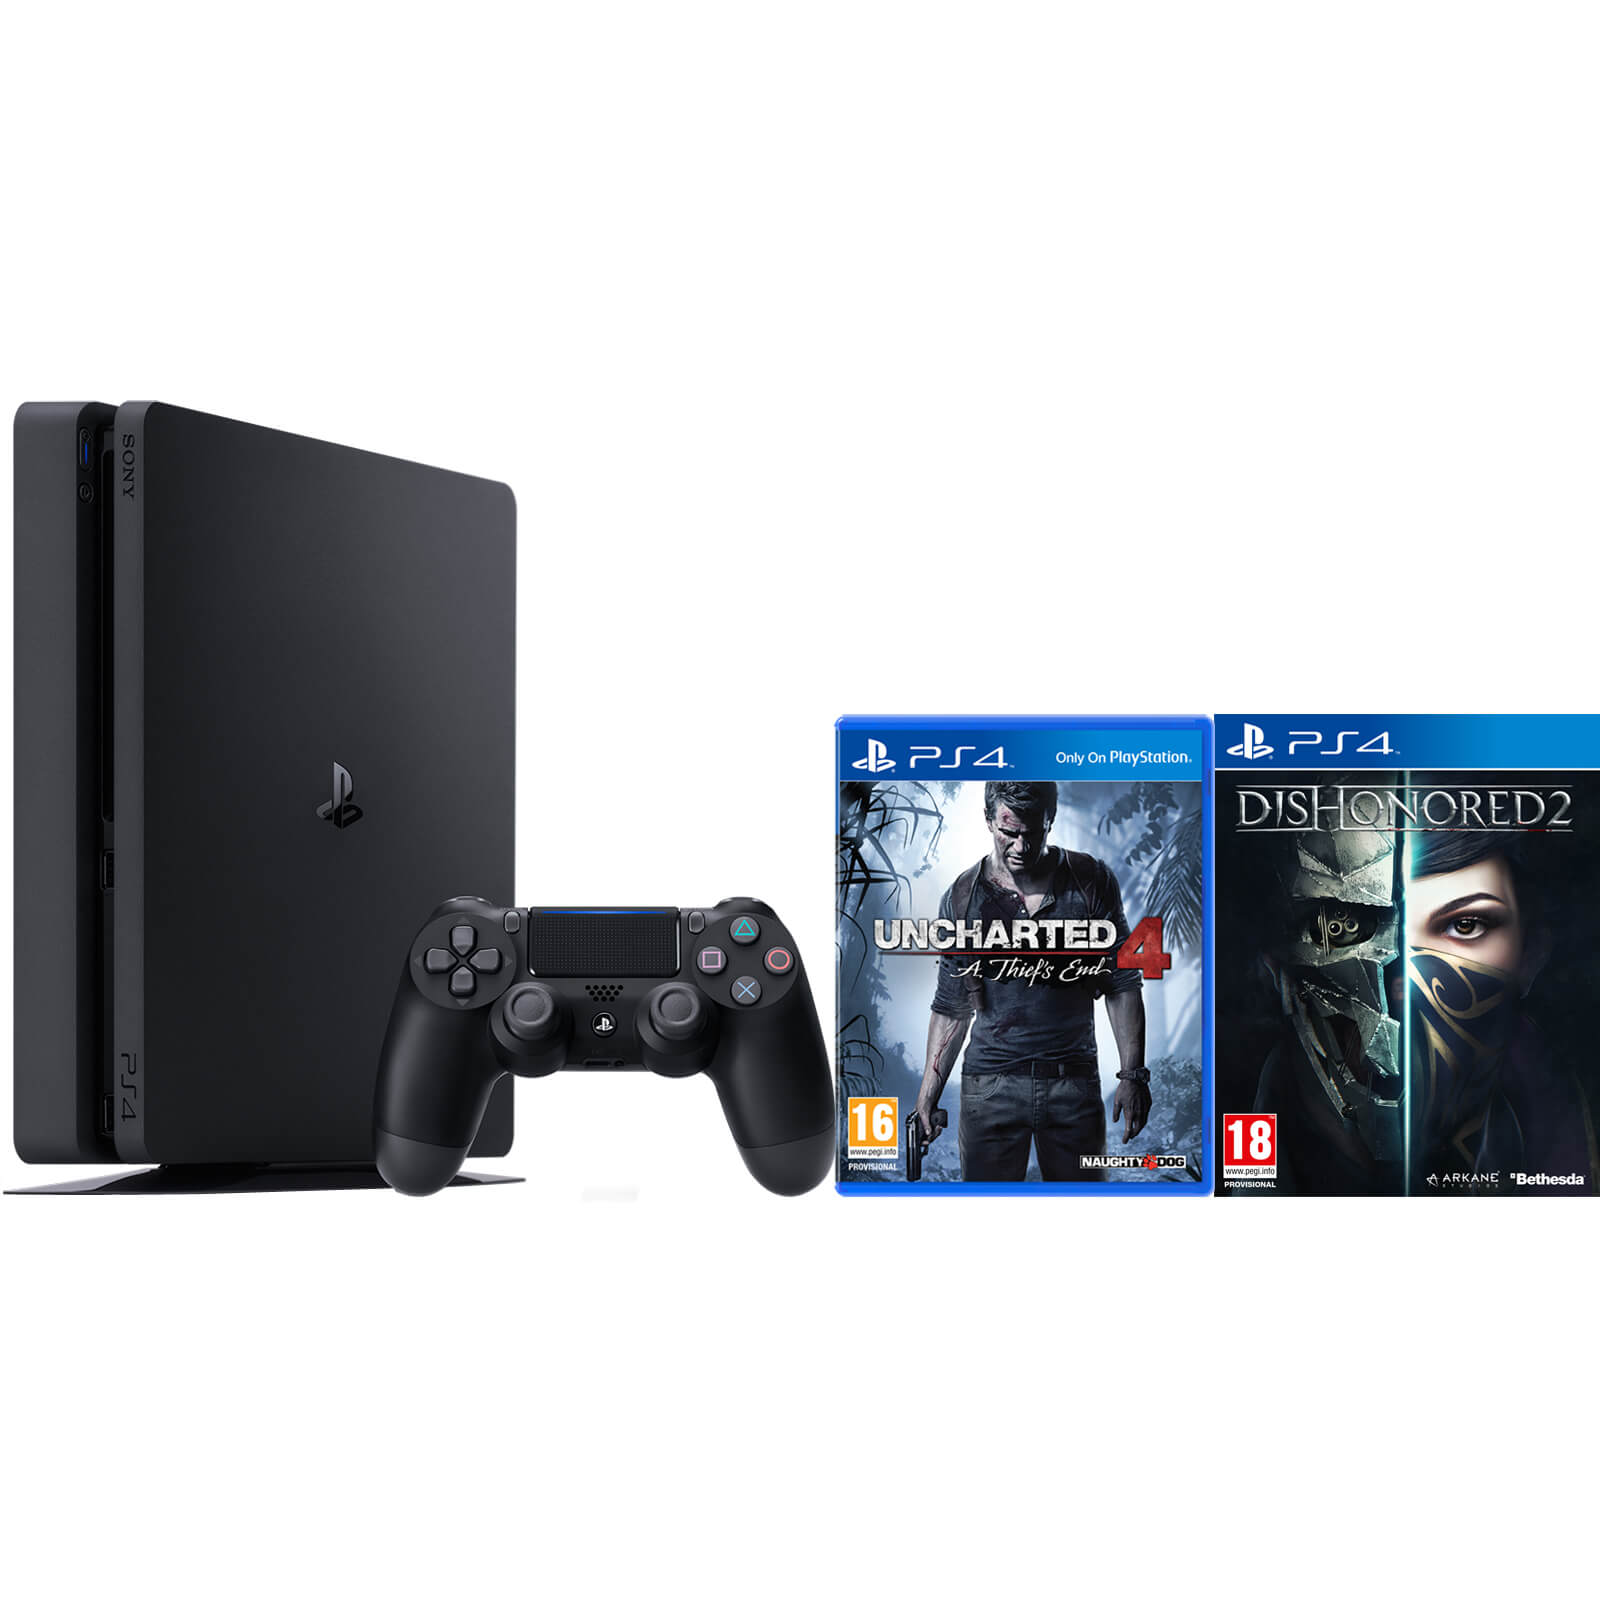 PlayStation 4 Slim 500GB with Uncharted 4 and Dishonored 2